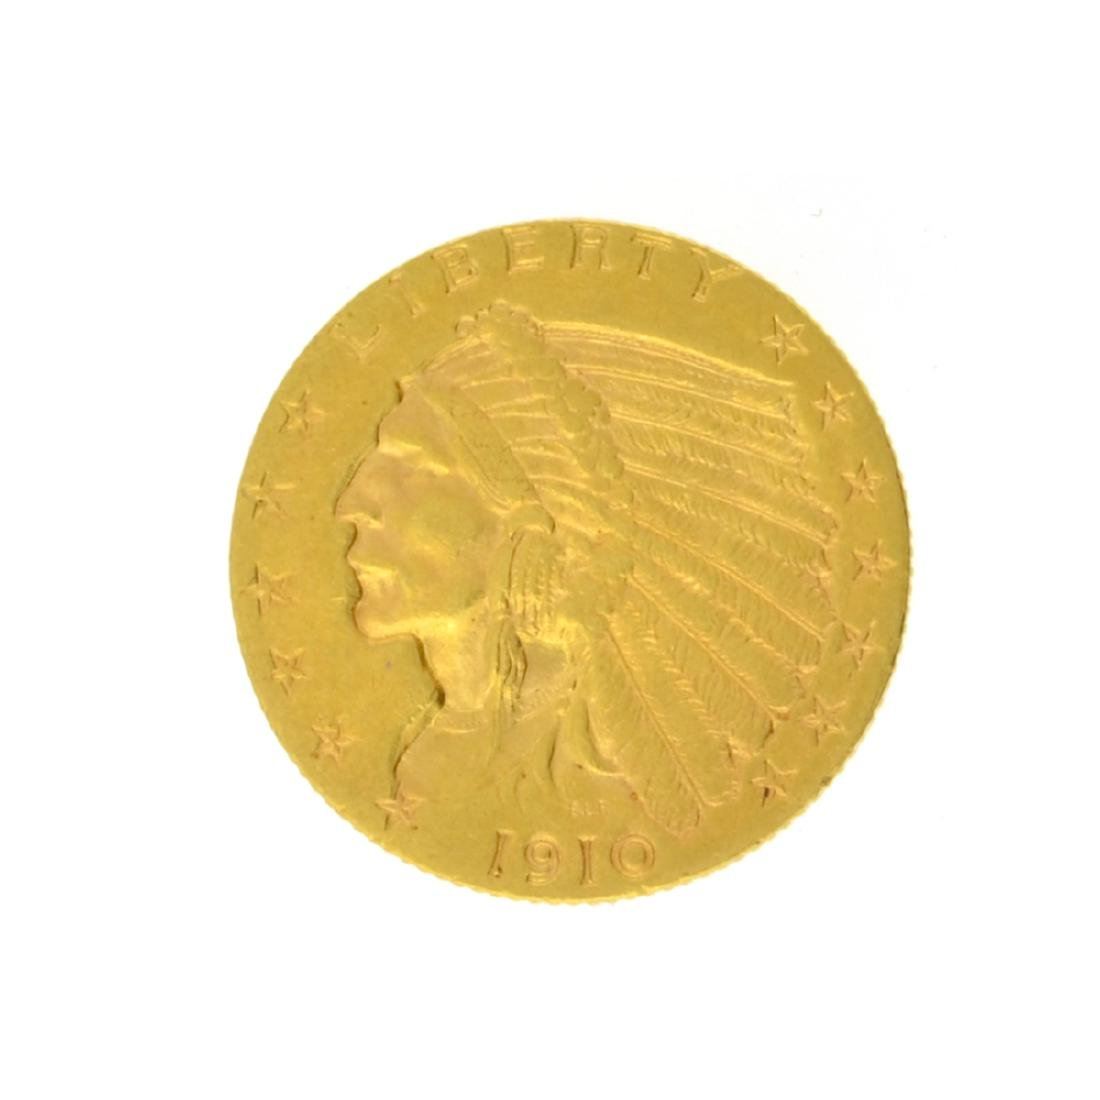 1910 $2.50 Indian Head Gold Coin